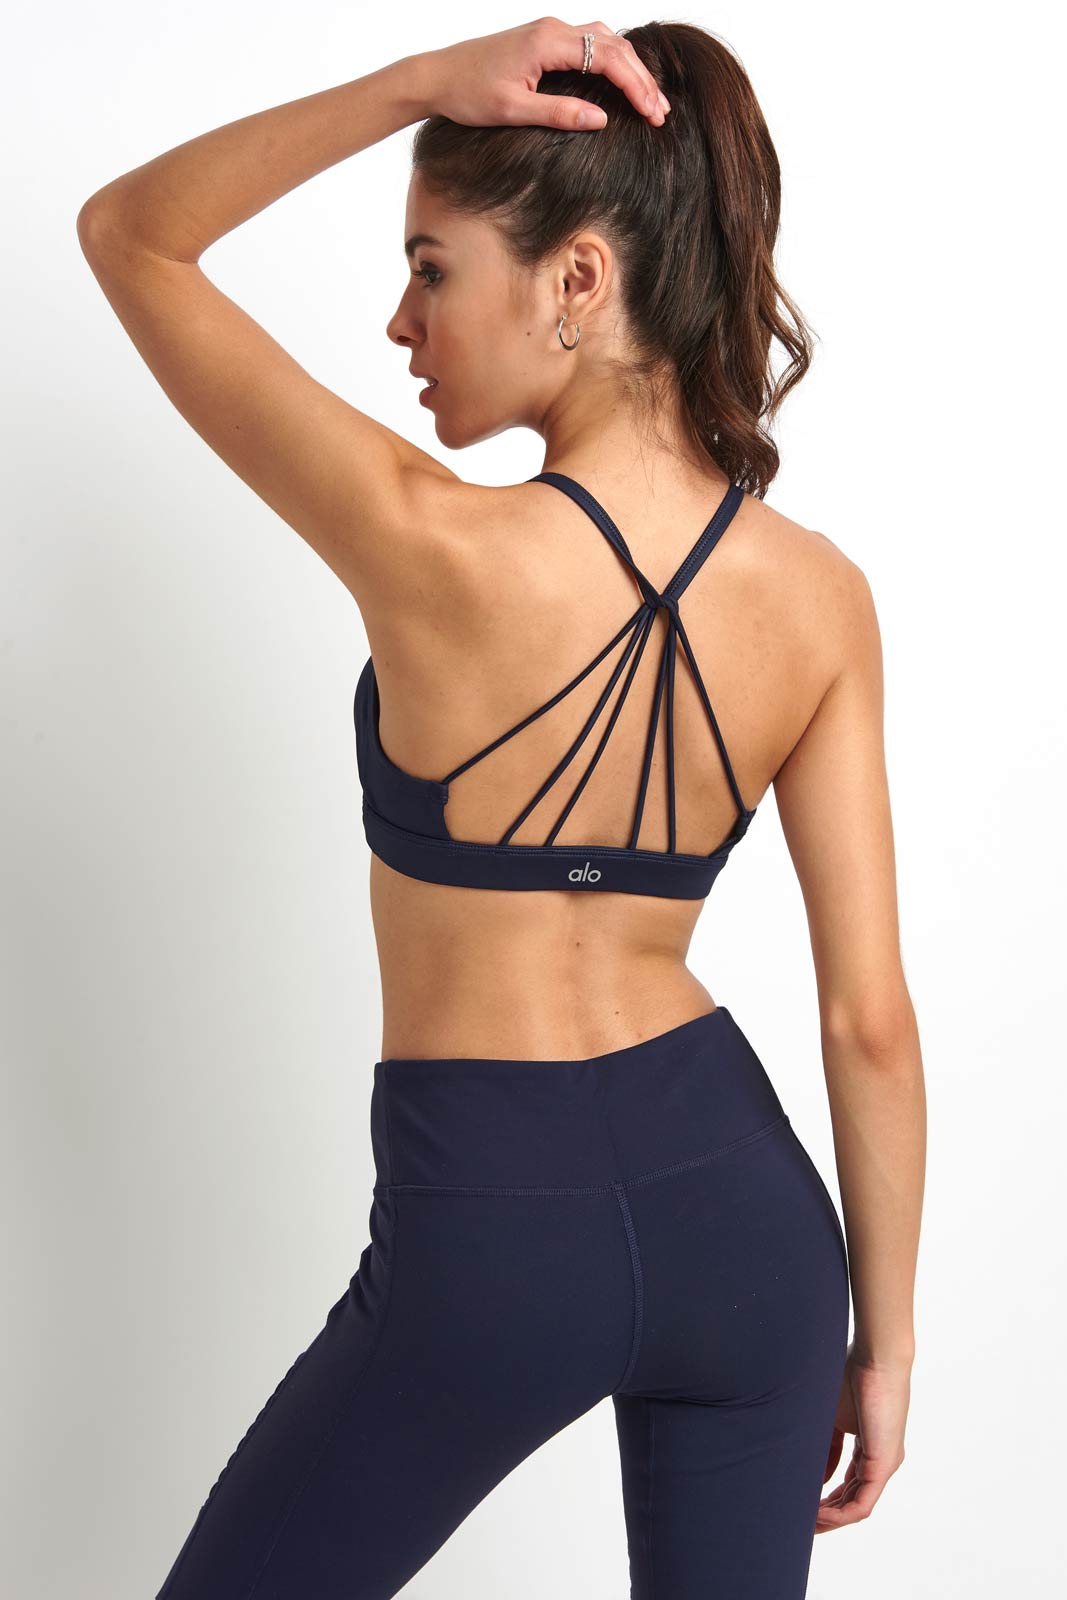 Alo Yoga Sunny Strappy Bra - Navy Glossy image 2 - The Sports Edit